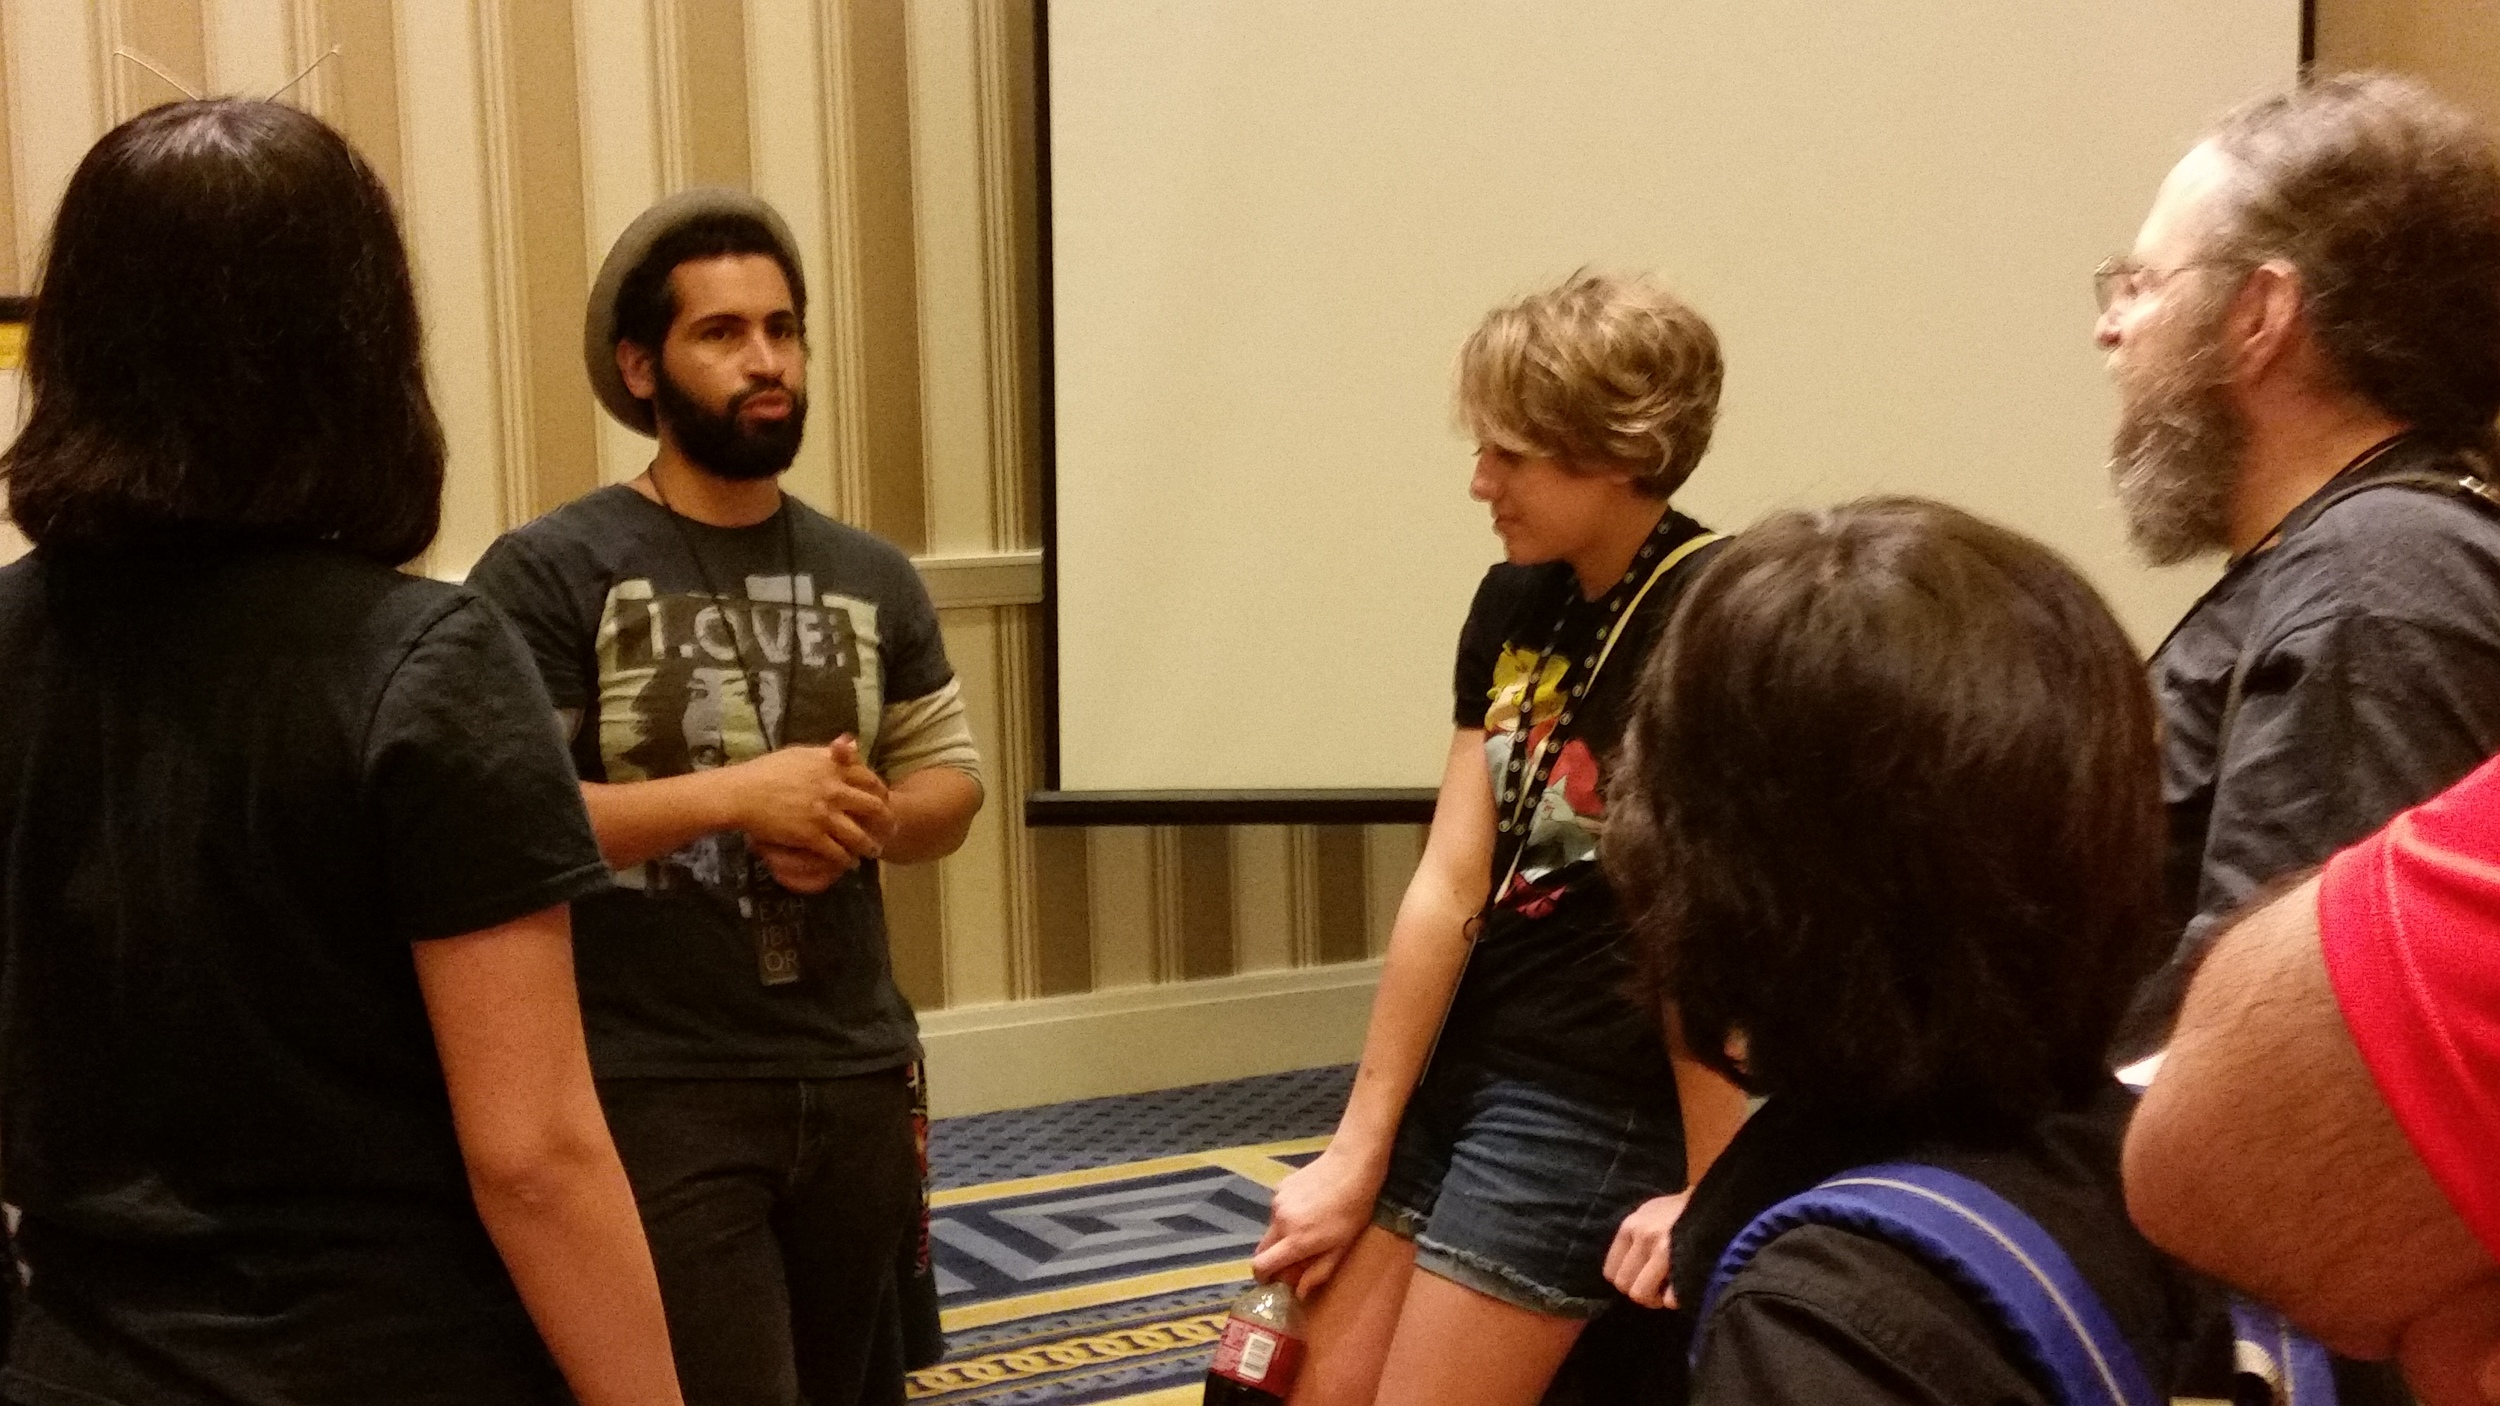 Andrew Smart speaking to burgeoning artists after his workshop.